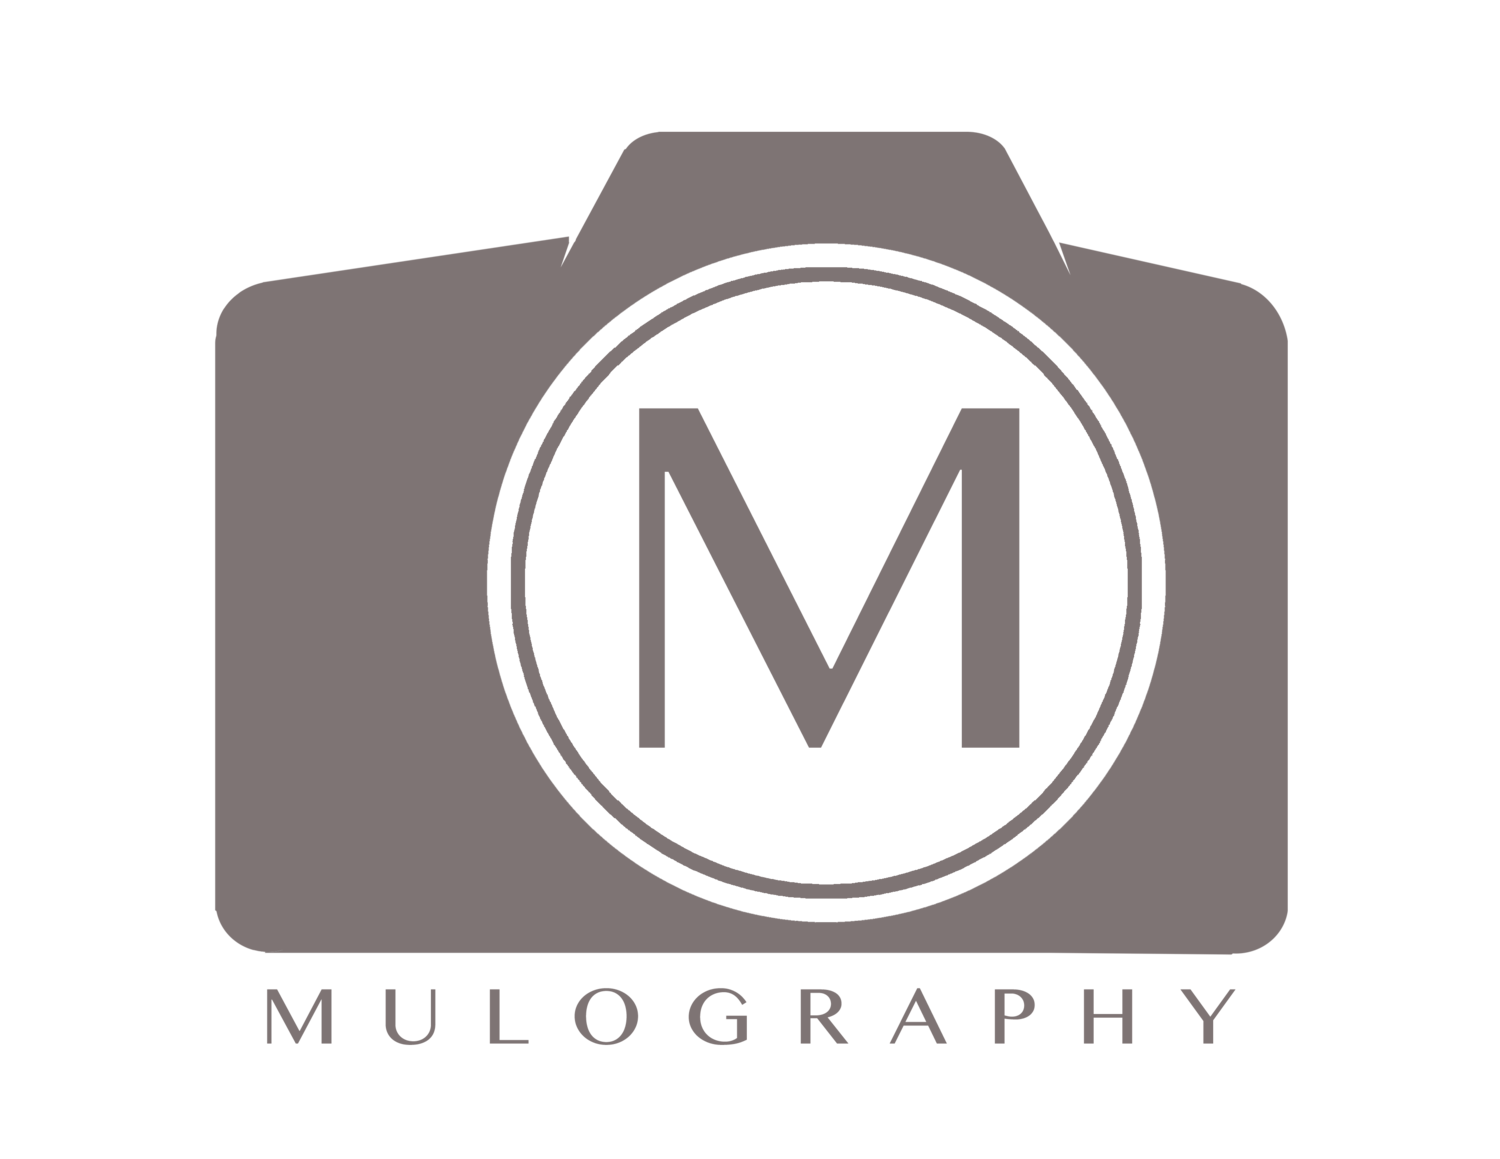 Mulography - Anthony Mulcahy